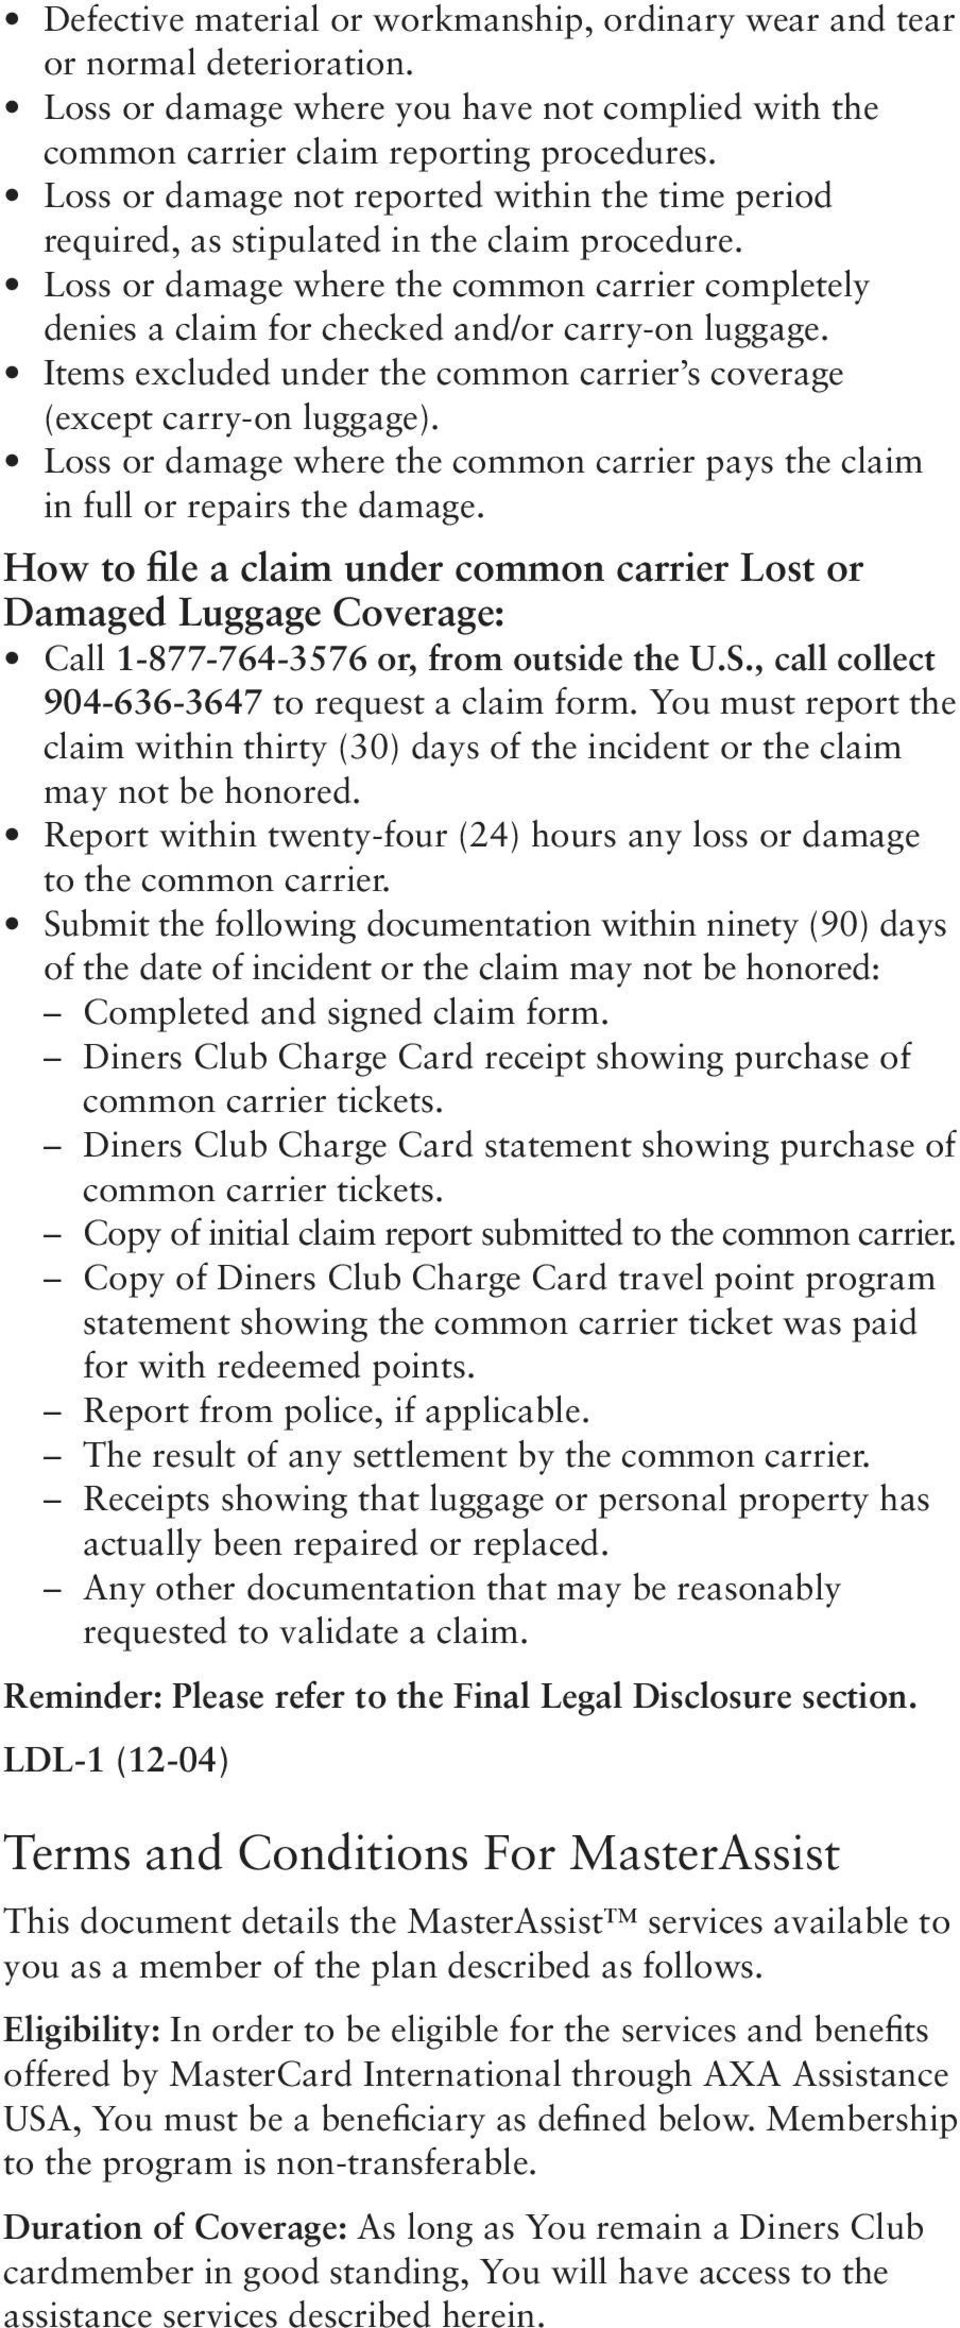 Loss or damage where the common carrier completely denies a claim for checked and/or carry-on luggage. Items excluded under the common carrier s coverage (except carry-on luggage).